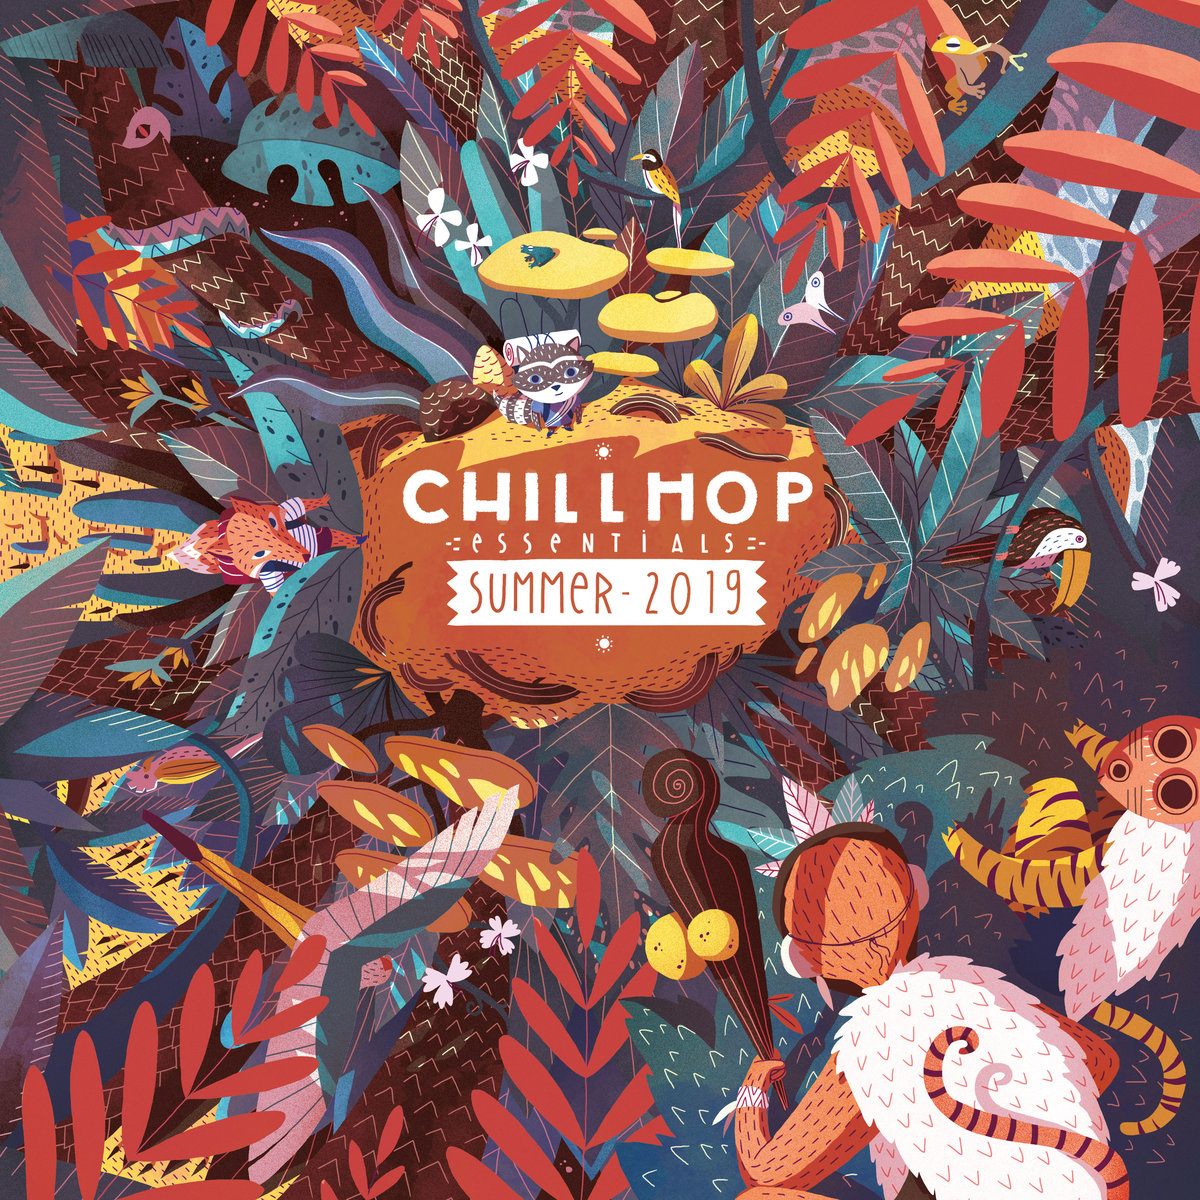 Chillhop Essentials Summer 2019 | Sommerliche Klänge im Full Album Stream